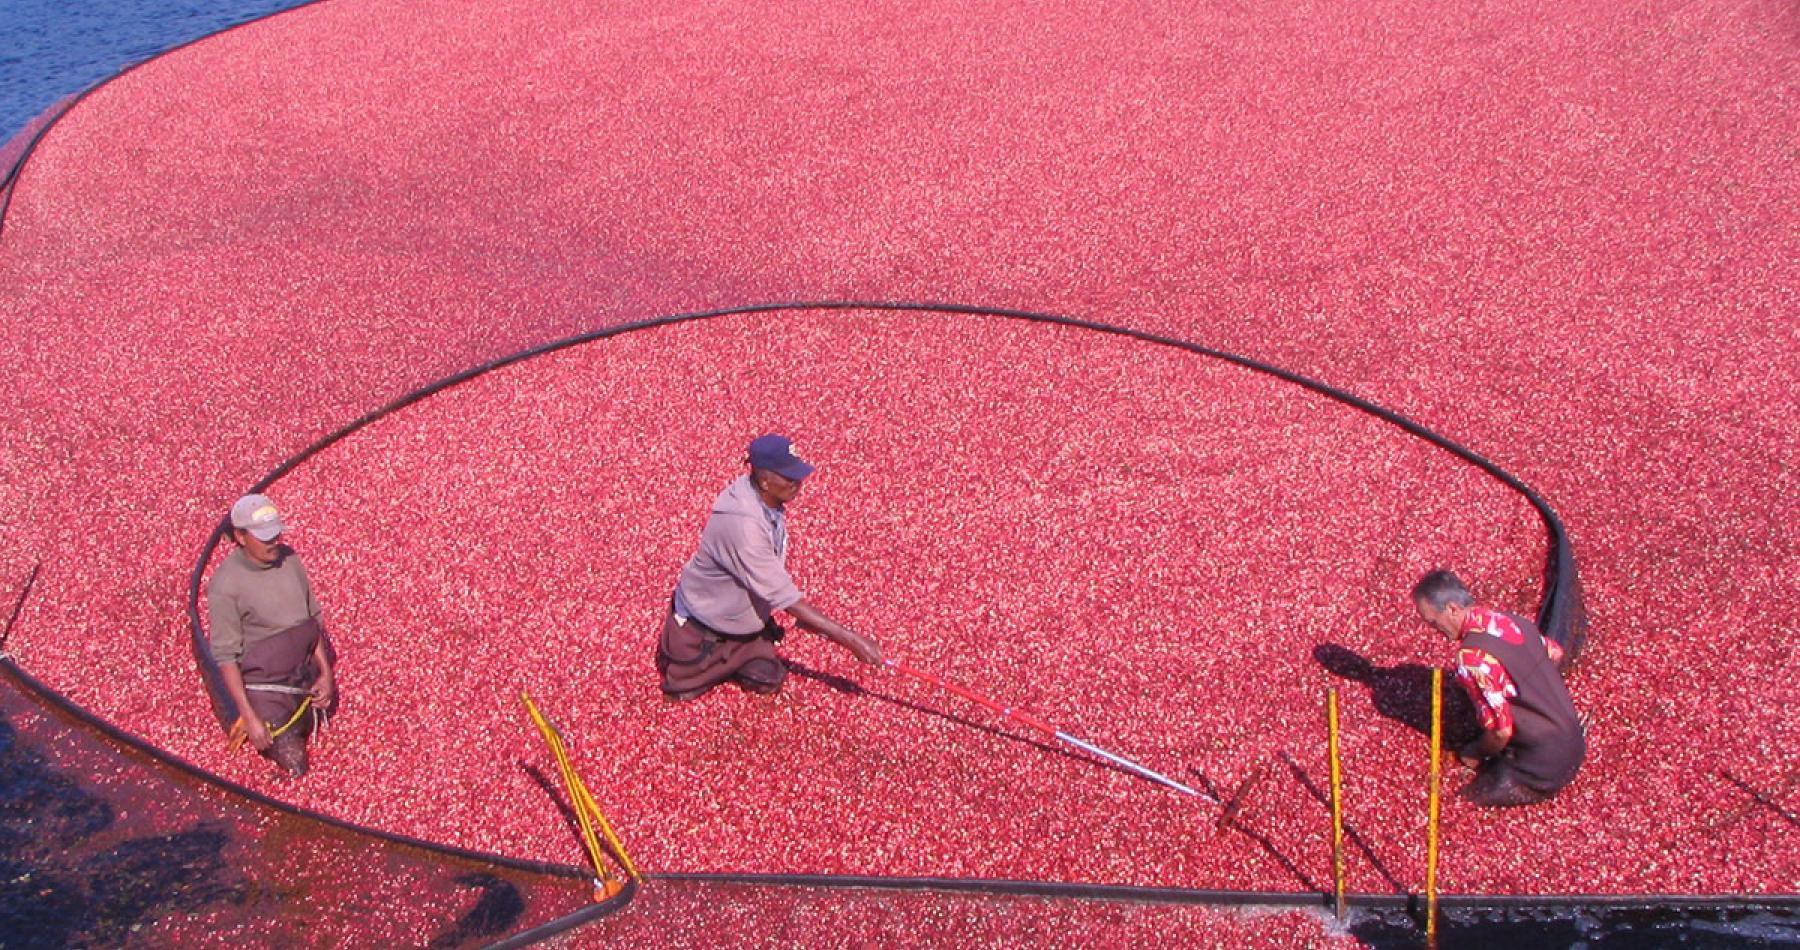 Harvesting cranberries at UMass Cranberry Station, East Wareham